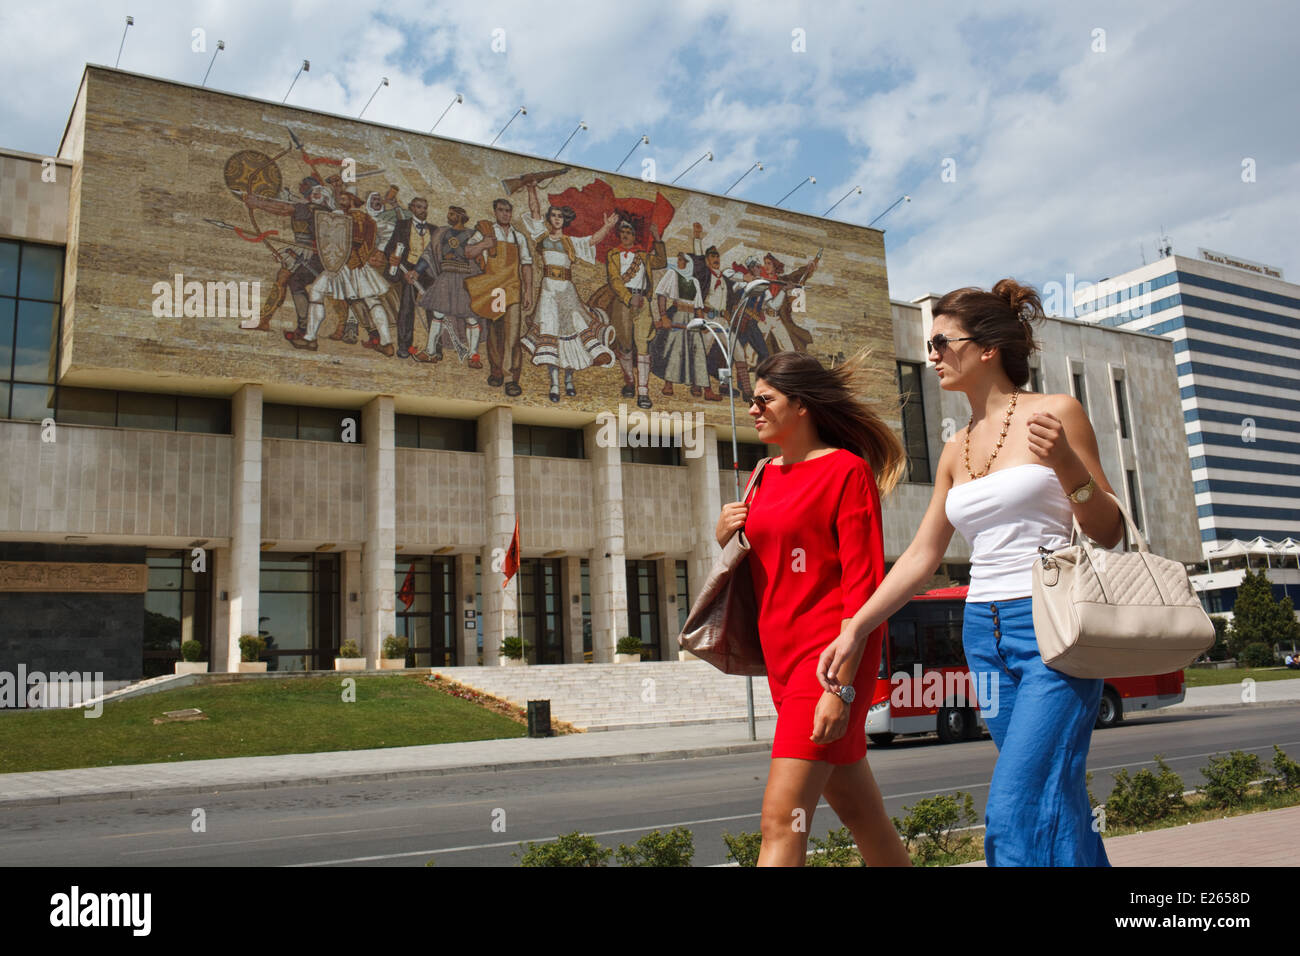 Two young fashionable women walk past National Historical Museum at Skanderbeg Square, Tirana, Albania. - Stock Image